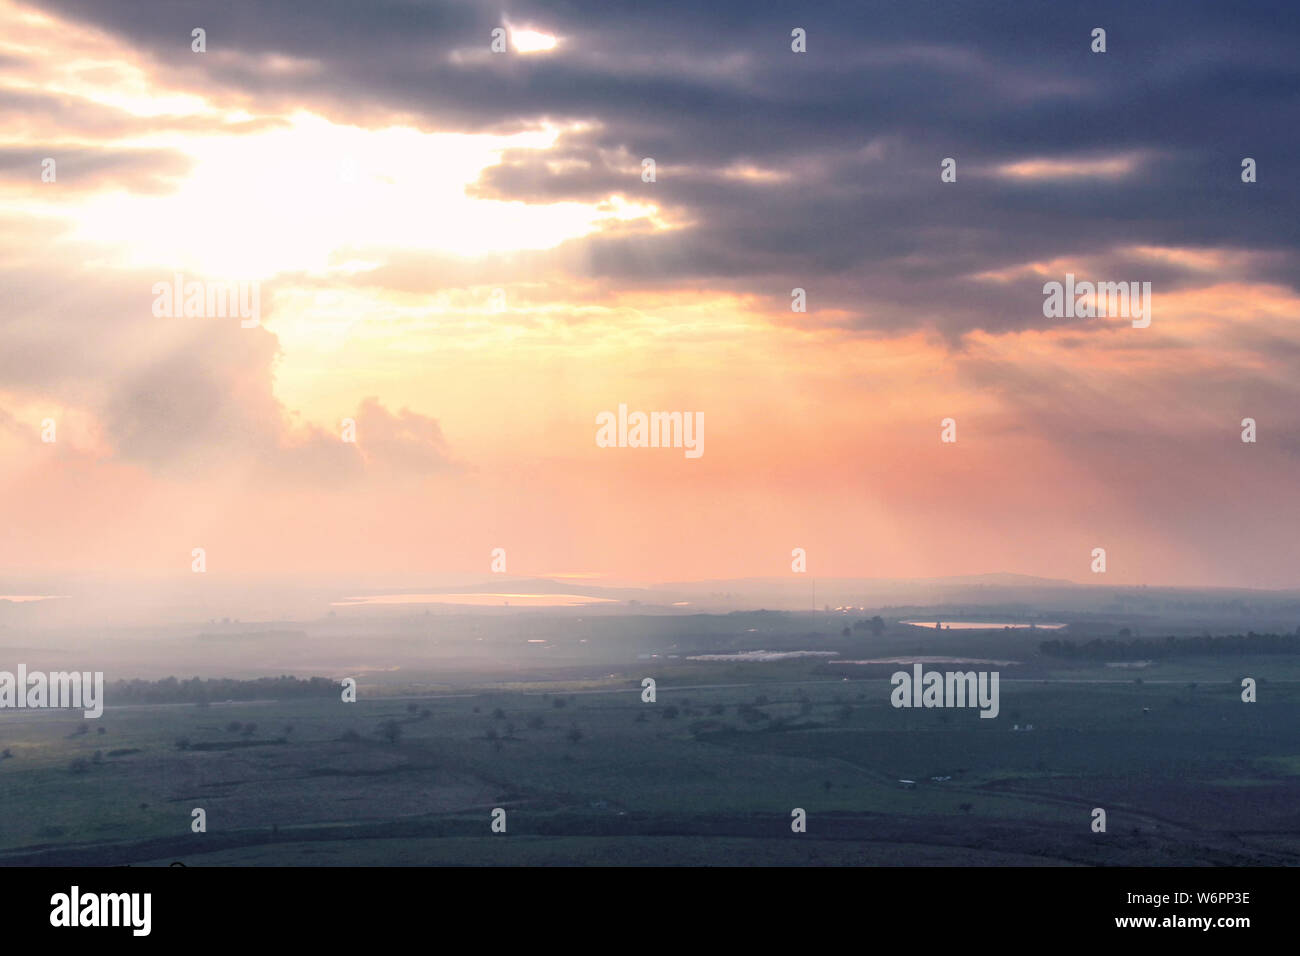 A view of the Golan Heights of Israel at sunset on a cloudy day from Tel Fares near the Syrian border. Stock Photo